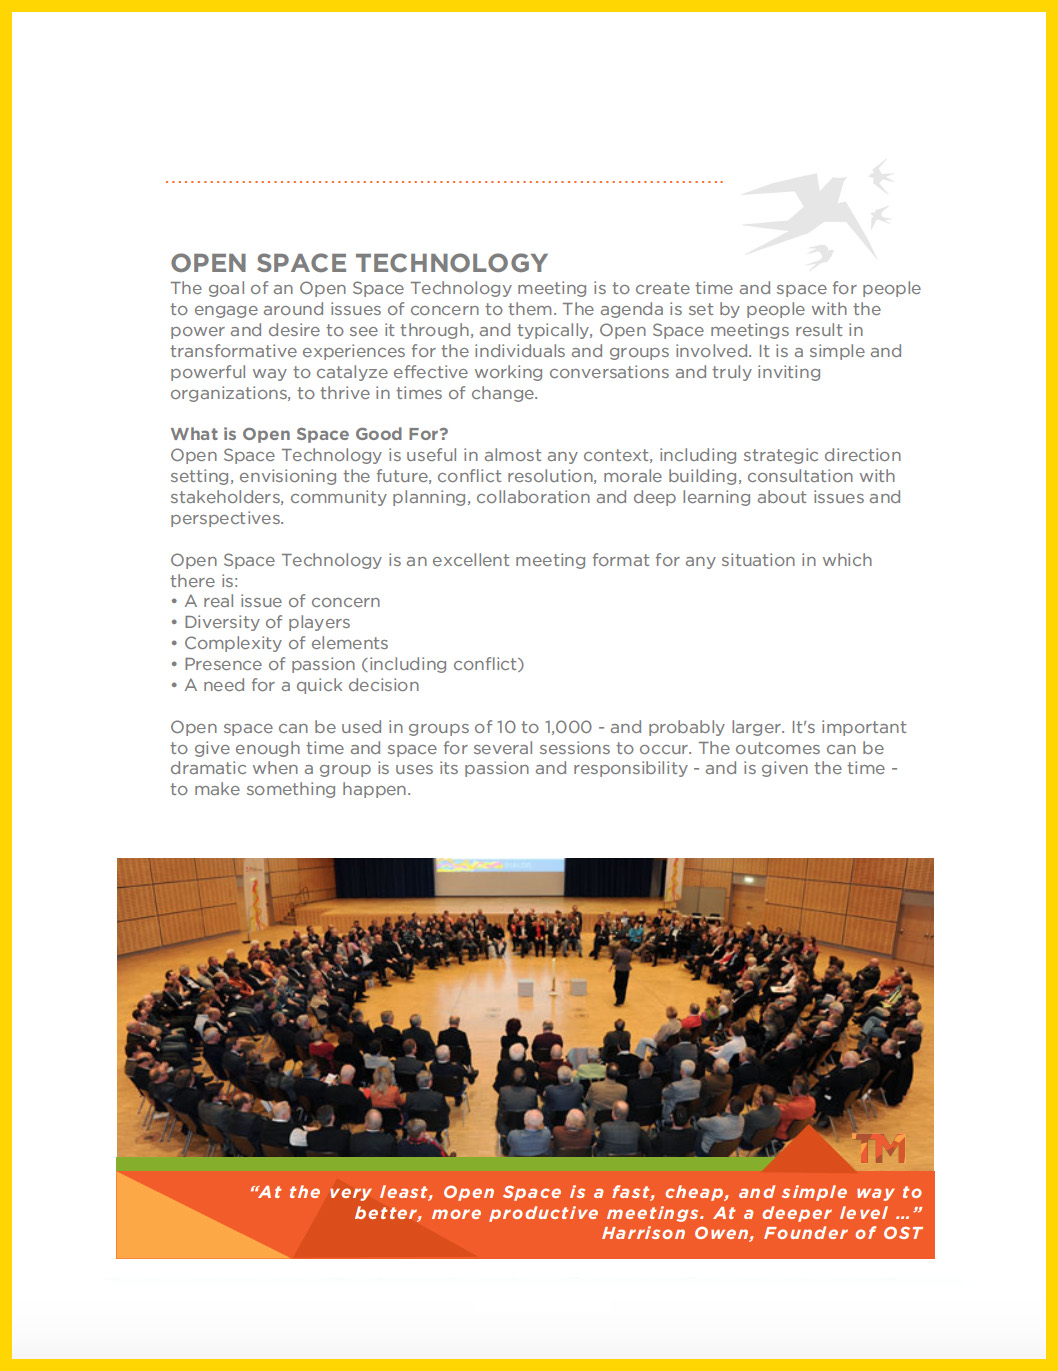 DOWNLOAD: OPEN SPACE TECHNOLOGY